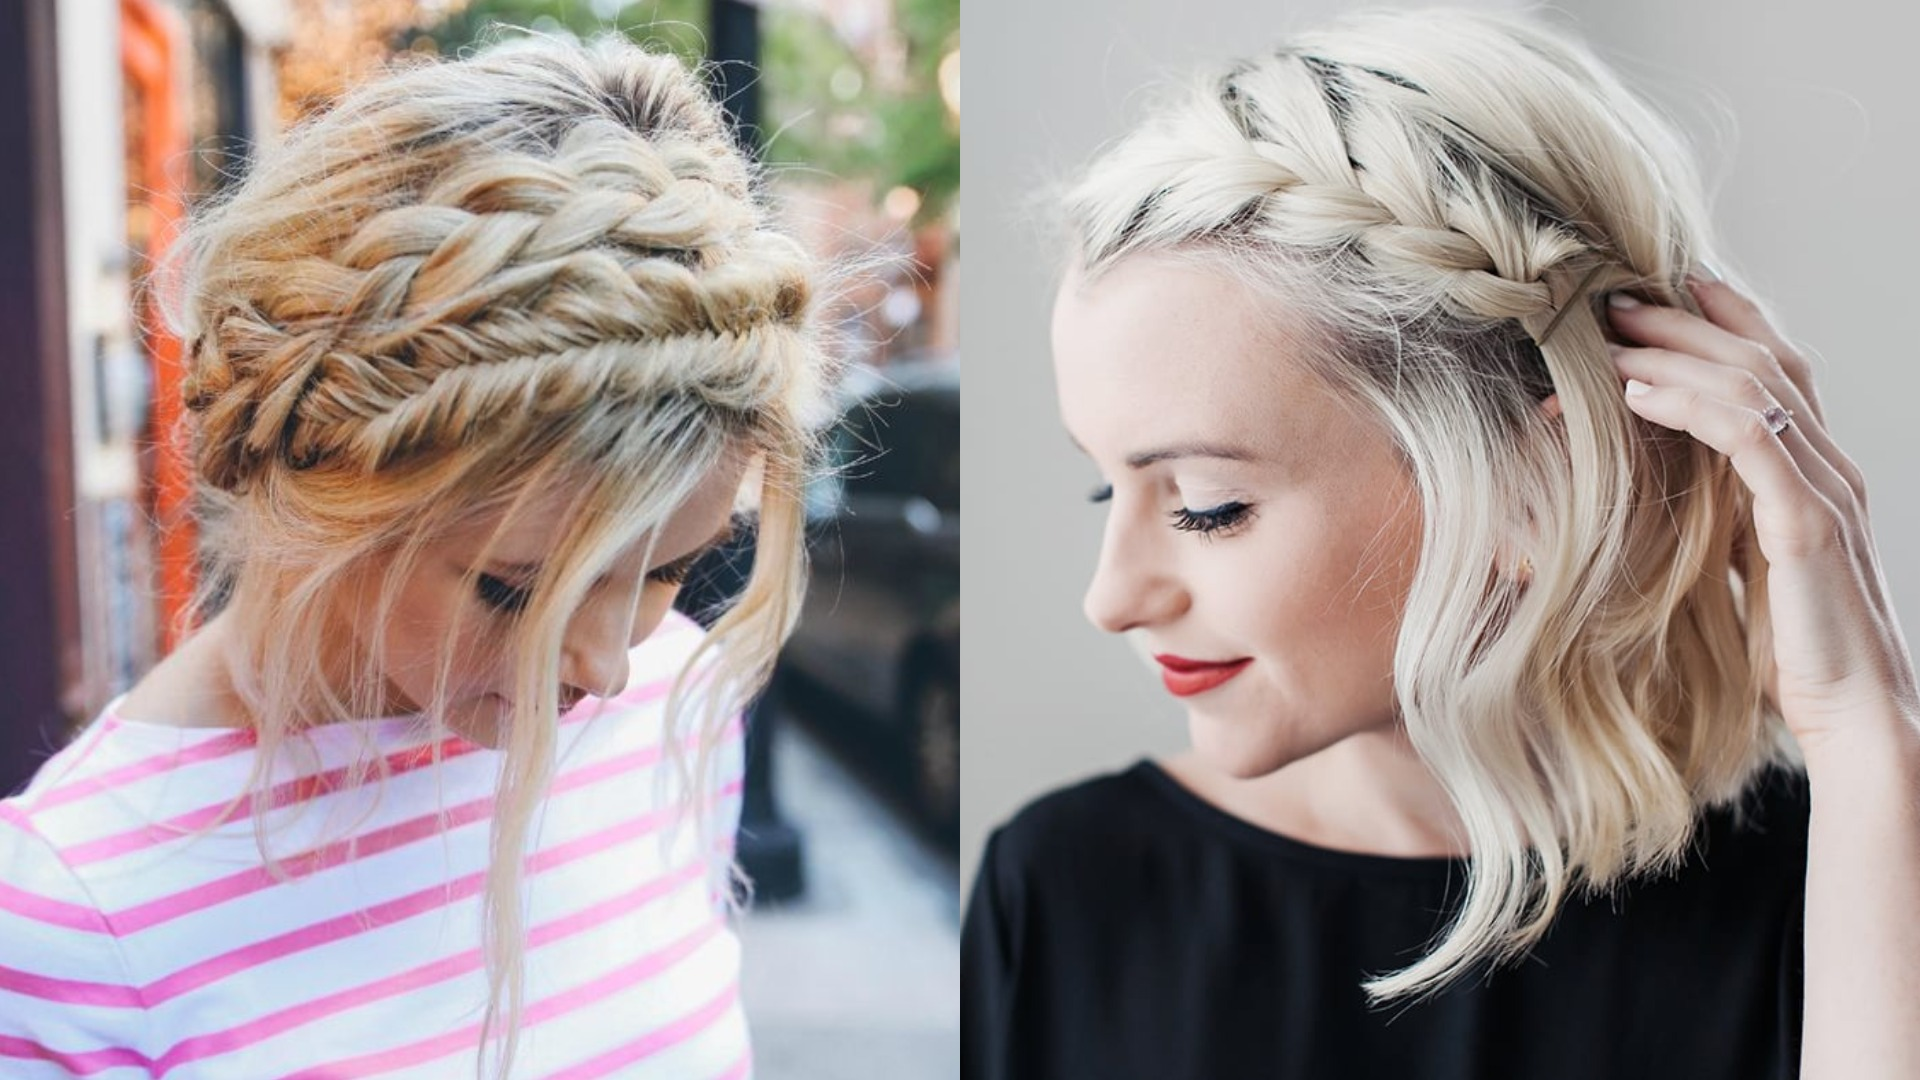 Medium-Braided-Hairstyles Most Amazing Medium Braided Hairstyles